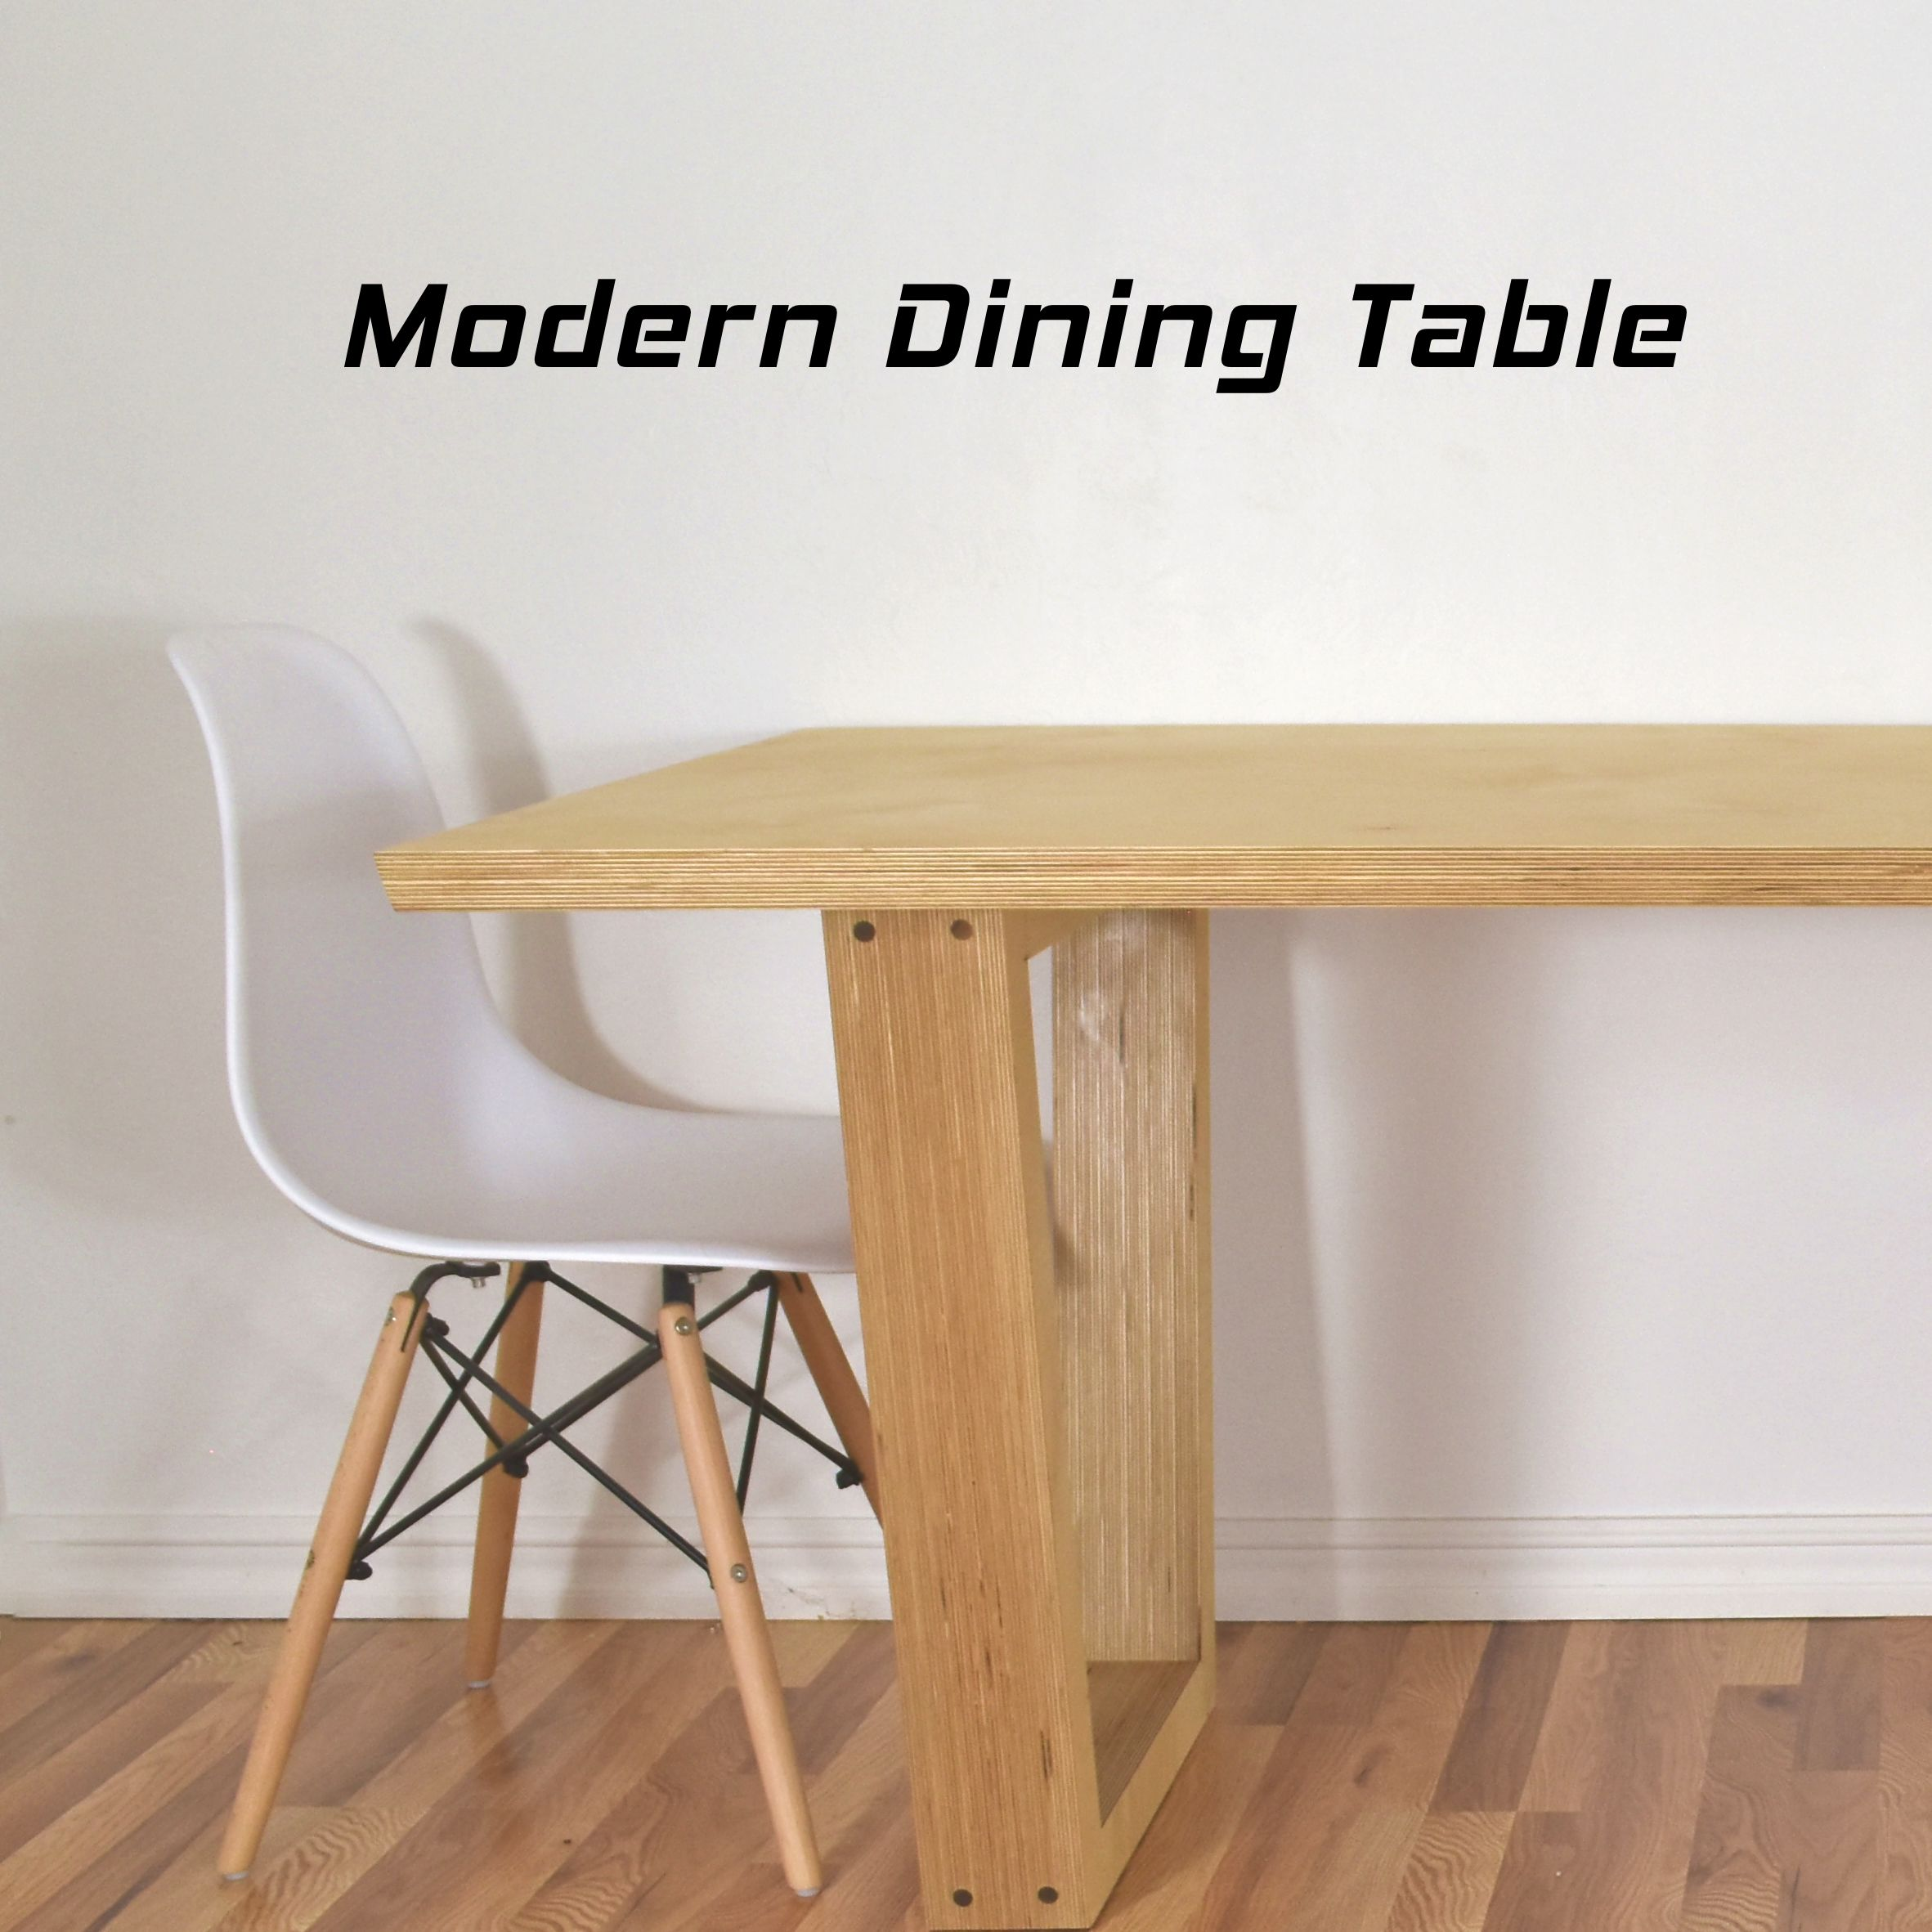 A Modern Dining Table Built From 3 4 Baltic Birch Plywood With A Trapezoidal Base Modern Dining Table Plywood Diy Cheap Dining Tables